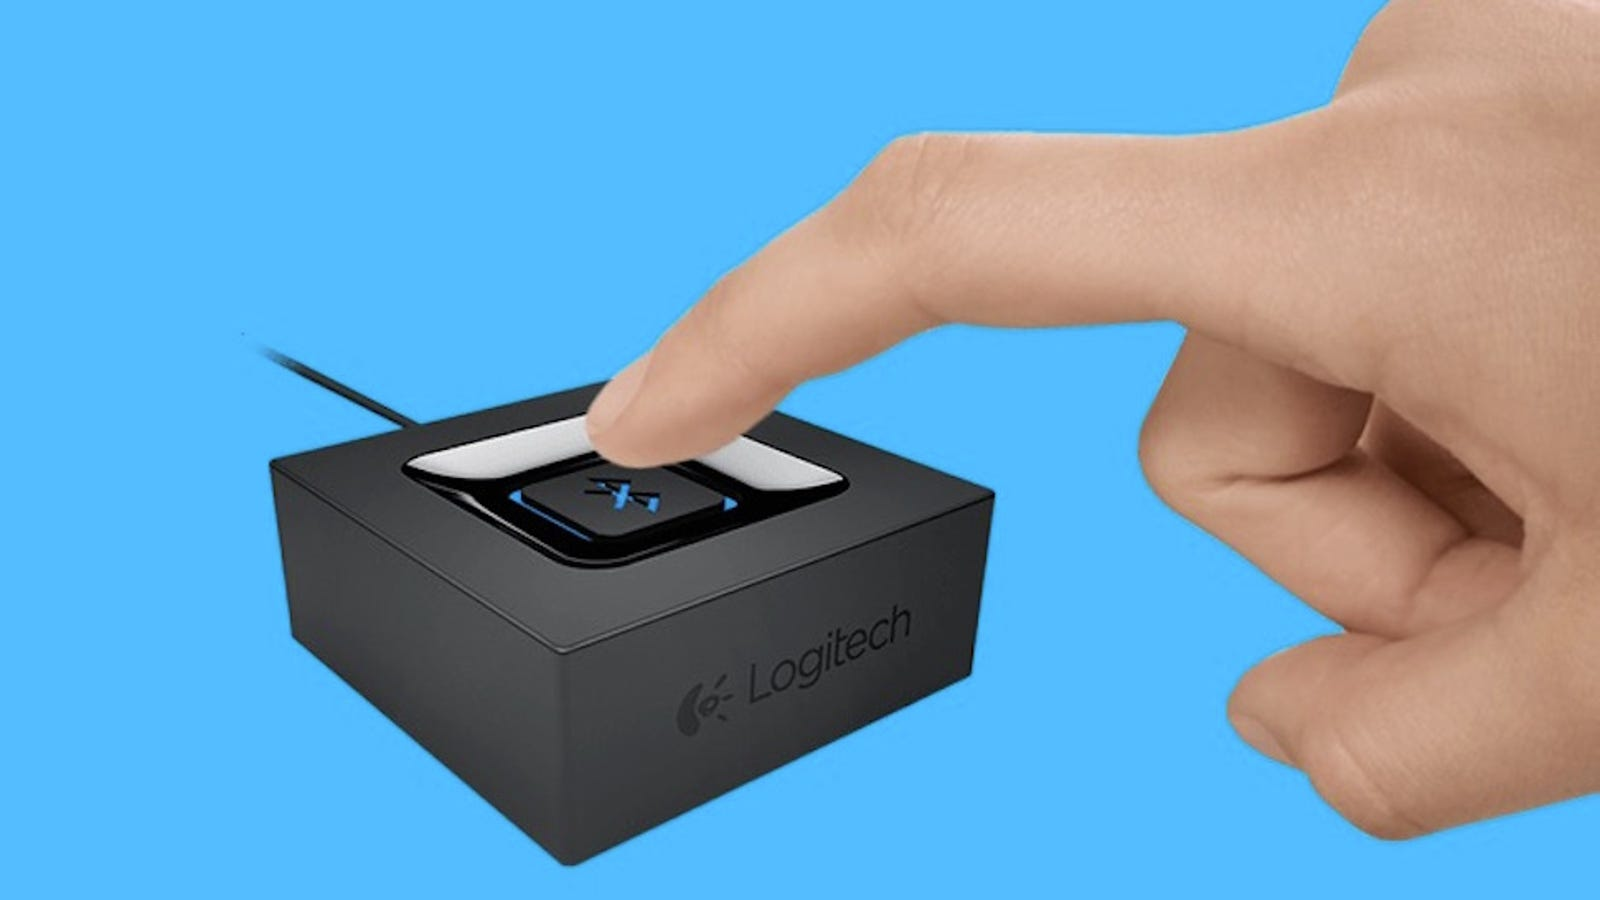 Logitechs Bluetooth Audio Adapter Turns Any Pair Of Speakers Into Wiring Outdoor With Volume Control Wireless Ones